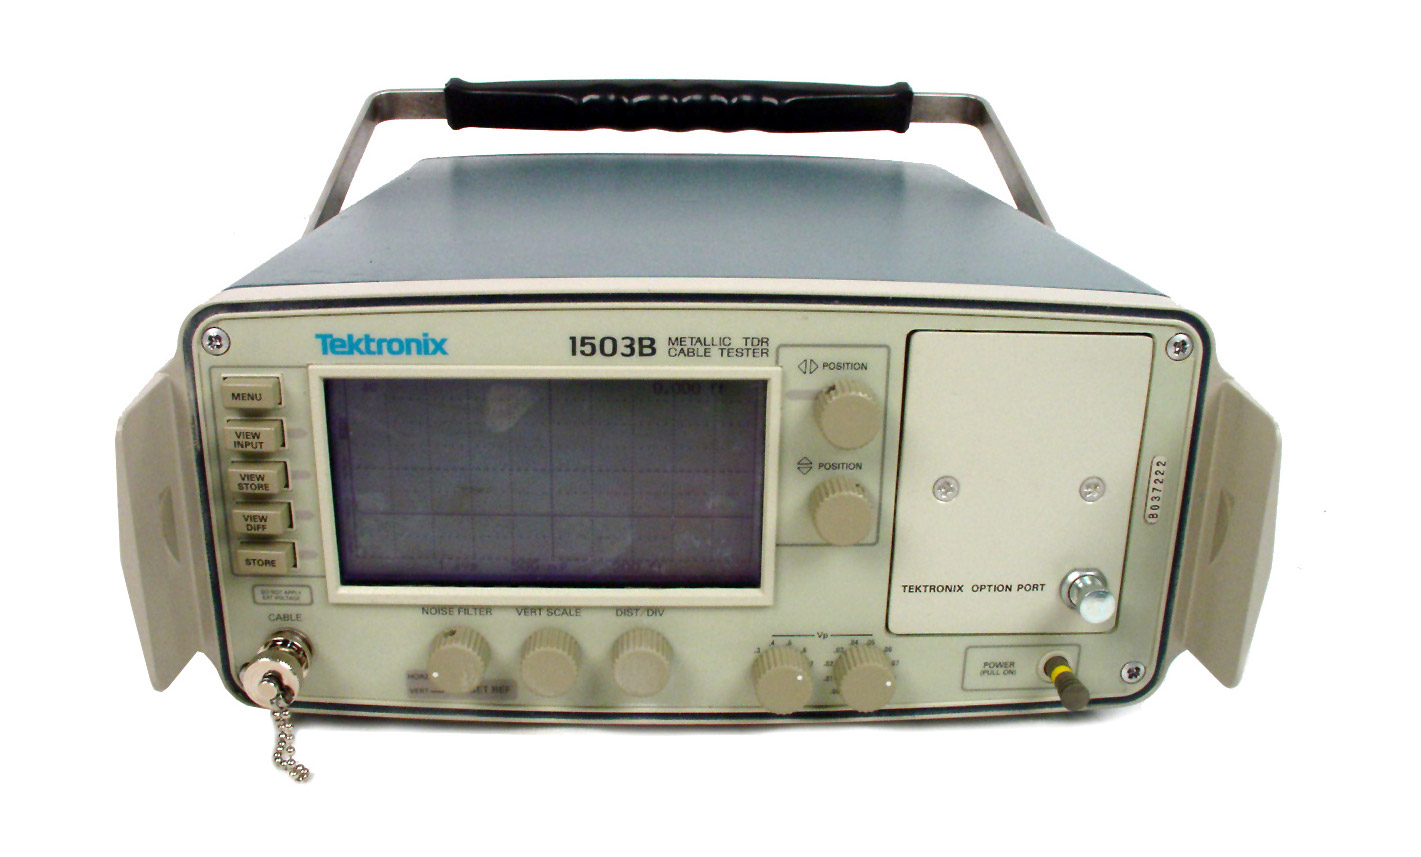 Tektronix 1503B TDR Time Domain Reflectometer Cable Tester